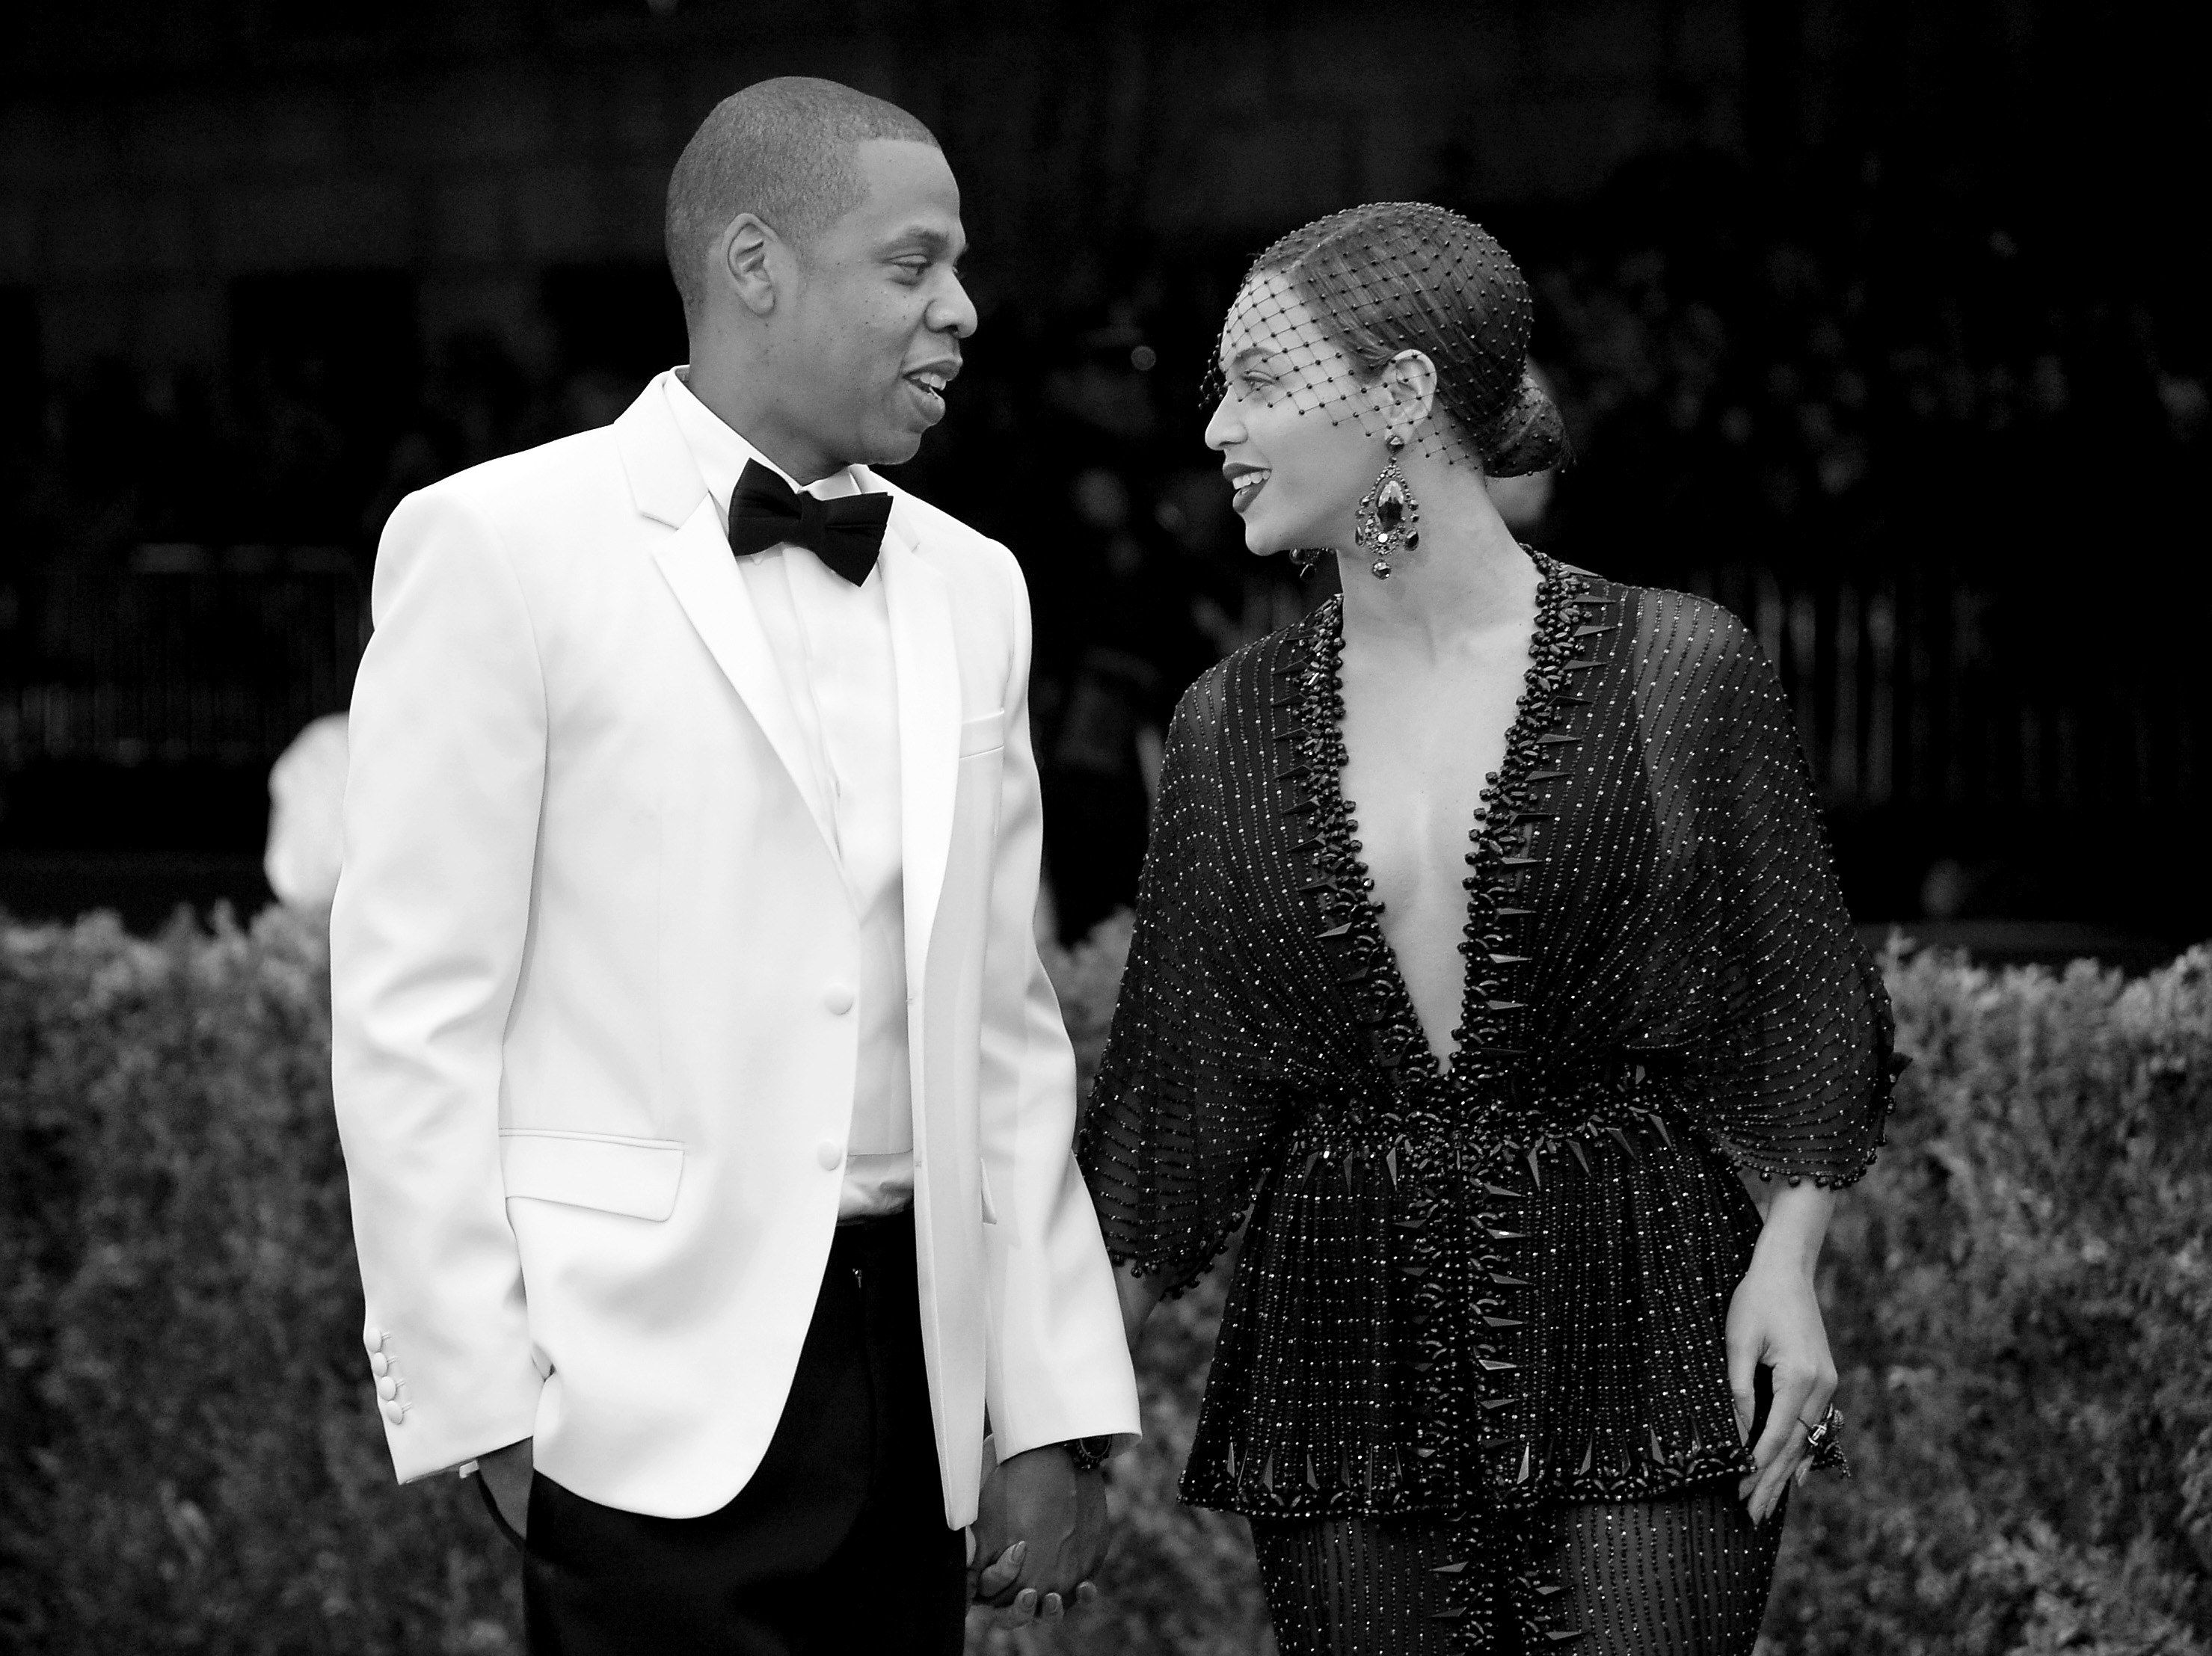 Jay Z & Beyonce's Divorce Announcement Could Come in Any of These 6